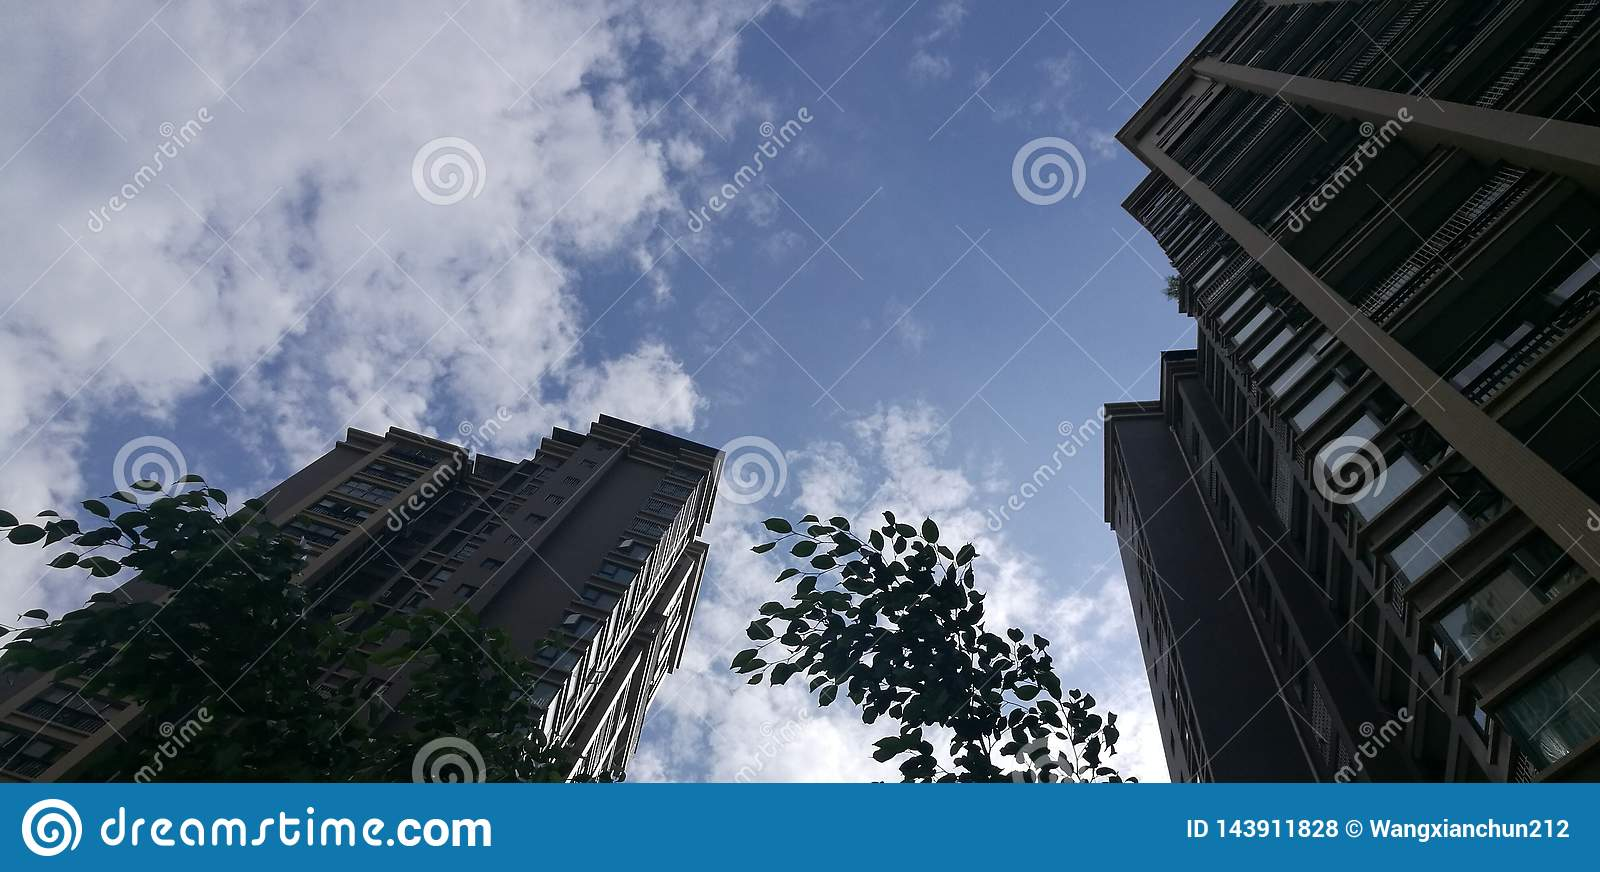 High-rise building under blue sky and white clouds